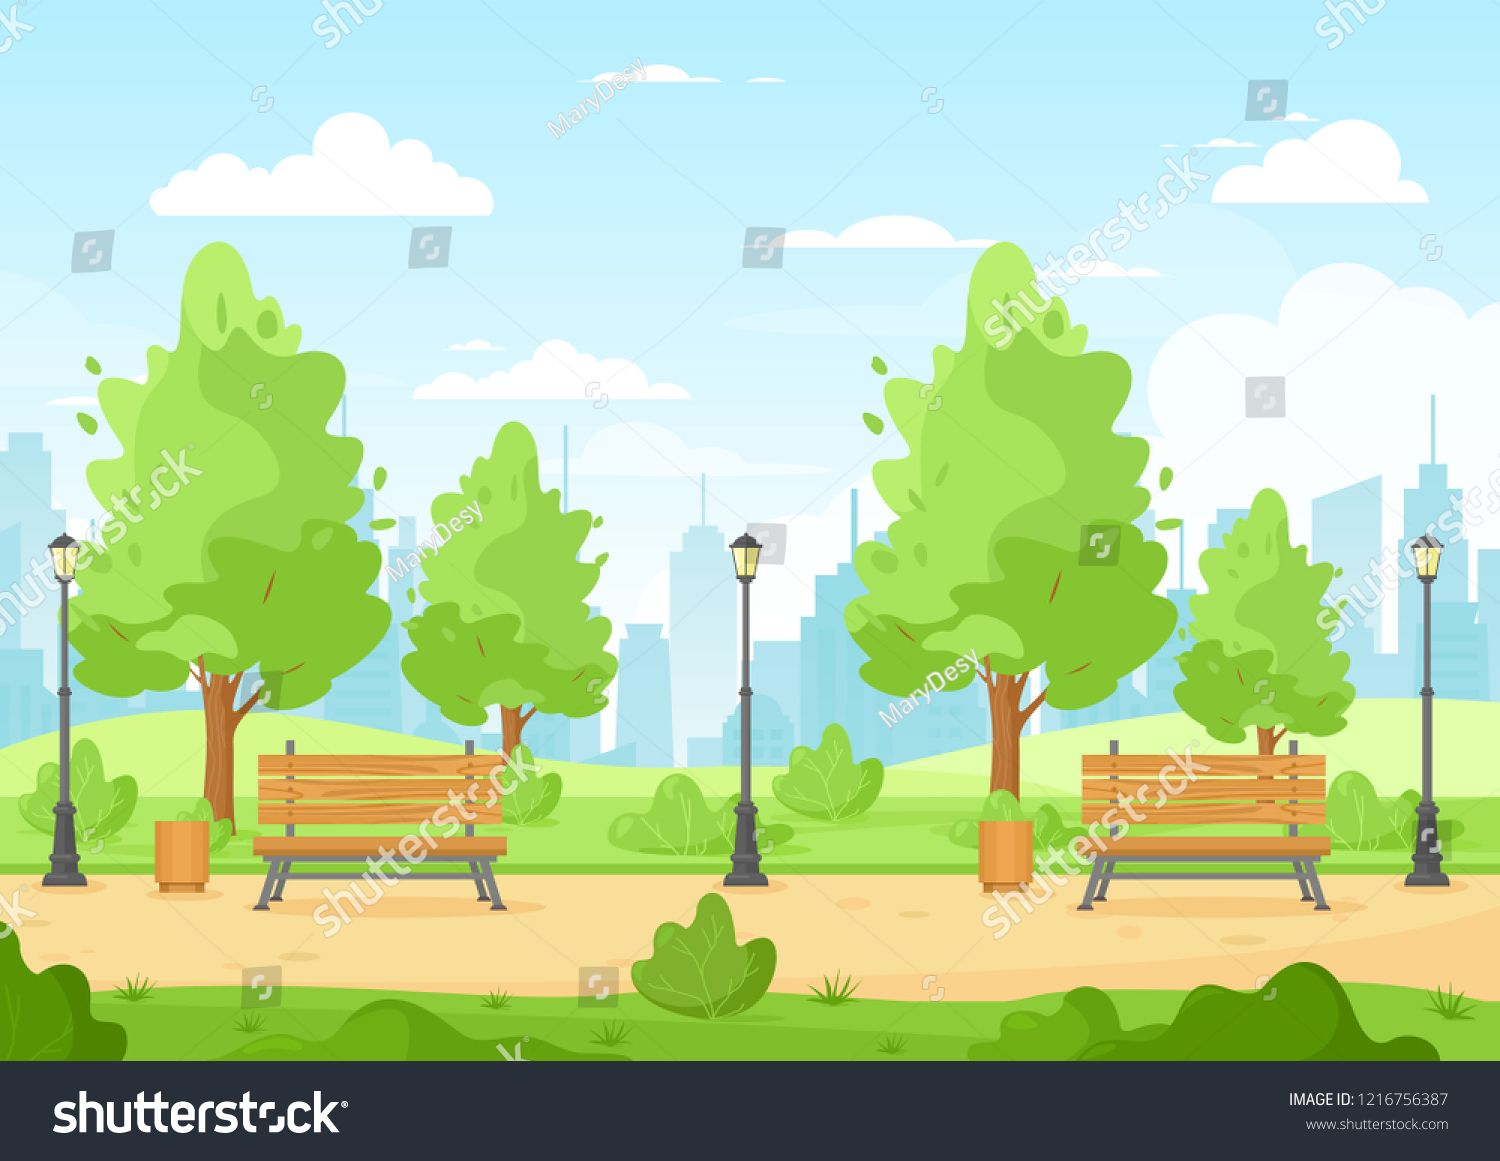 Vector Illustration Of City Park With Trees Bush Bench Trash Can Lantern Walkway Hills And City Skyline Be City Cartoon Vector Illustration Illustration